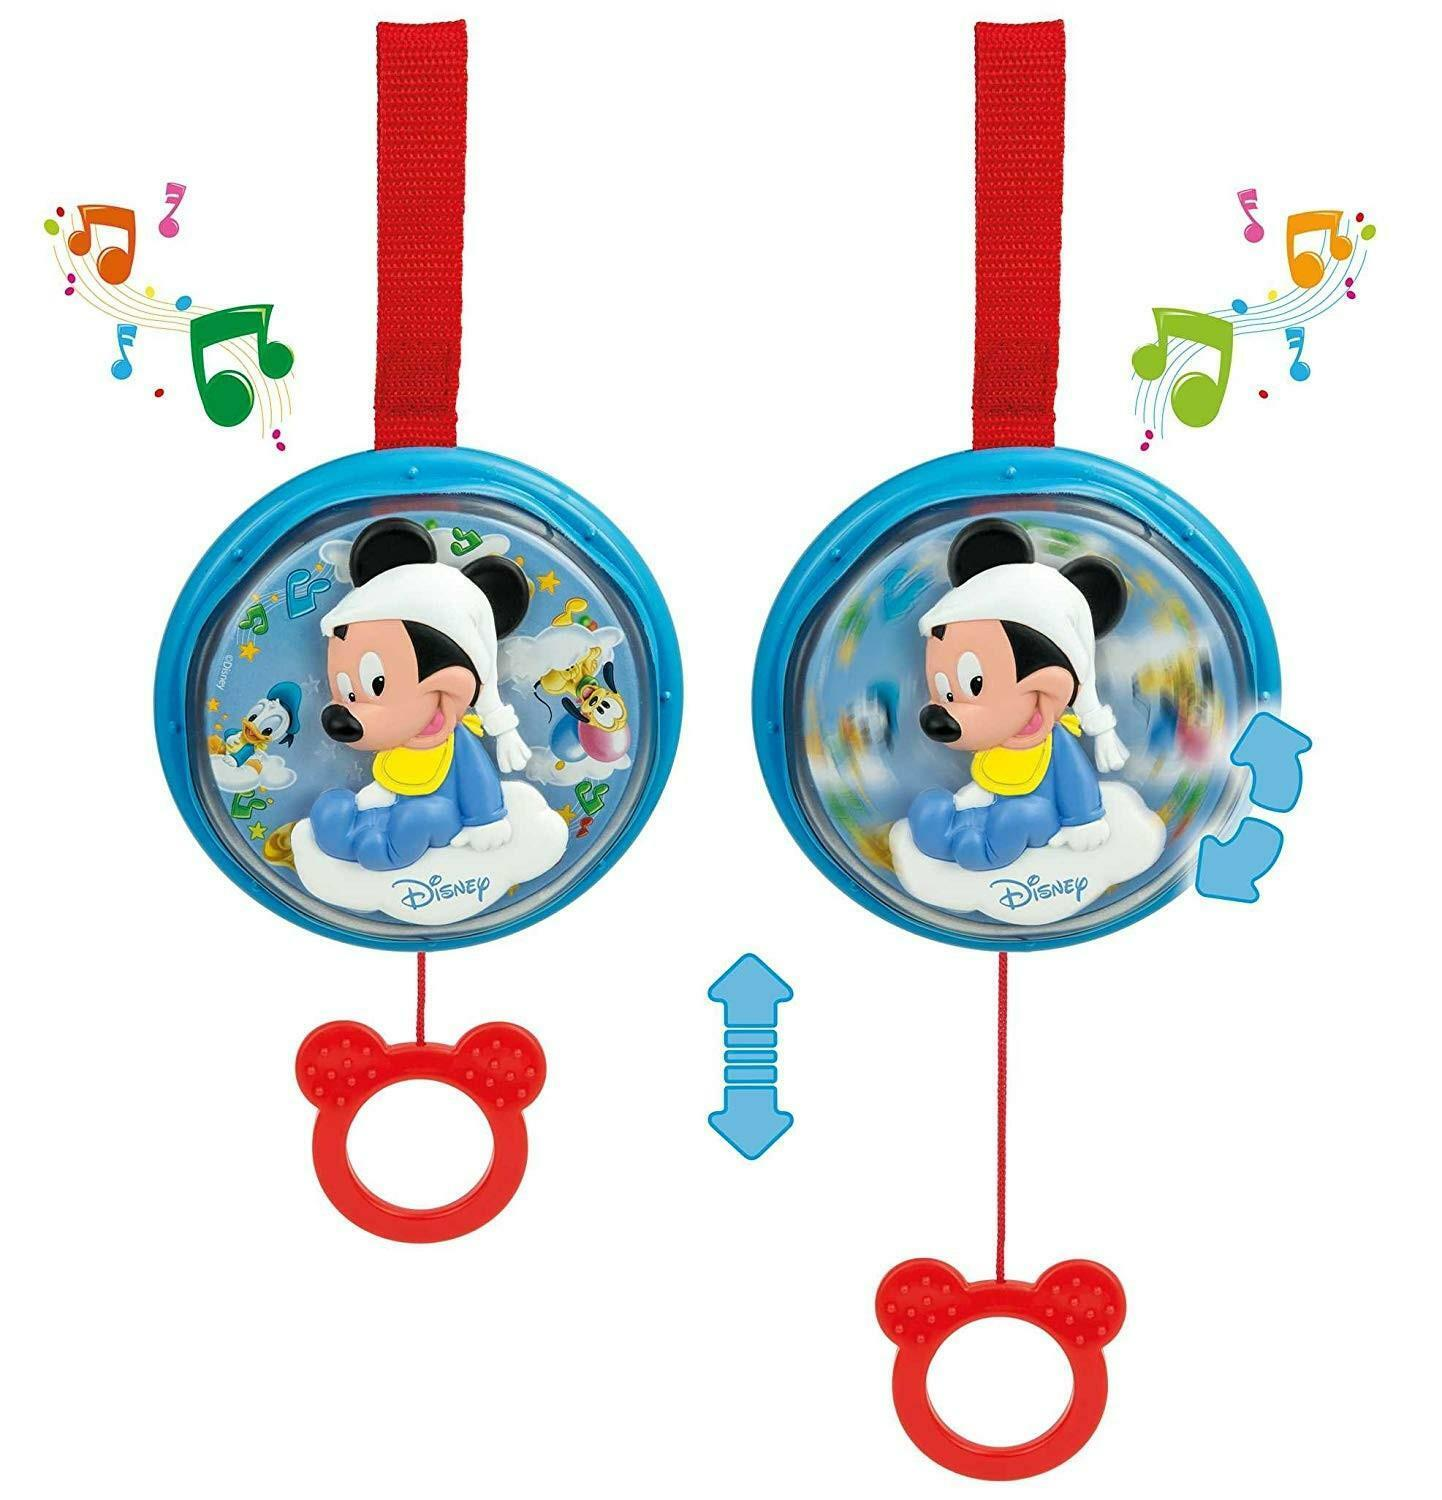 clementoni baby mickey carillon dolce notte 14650